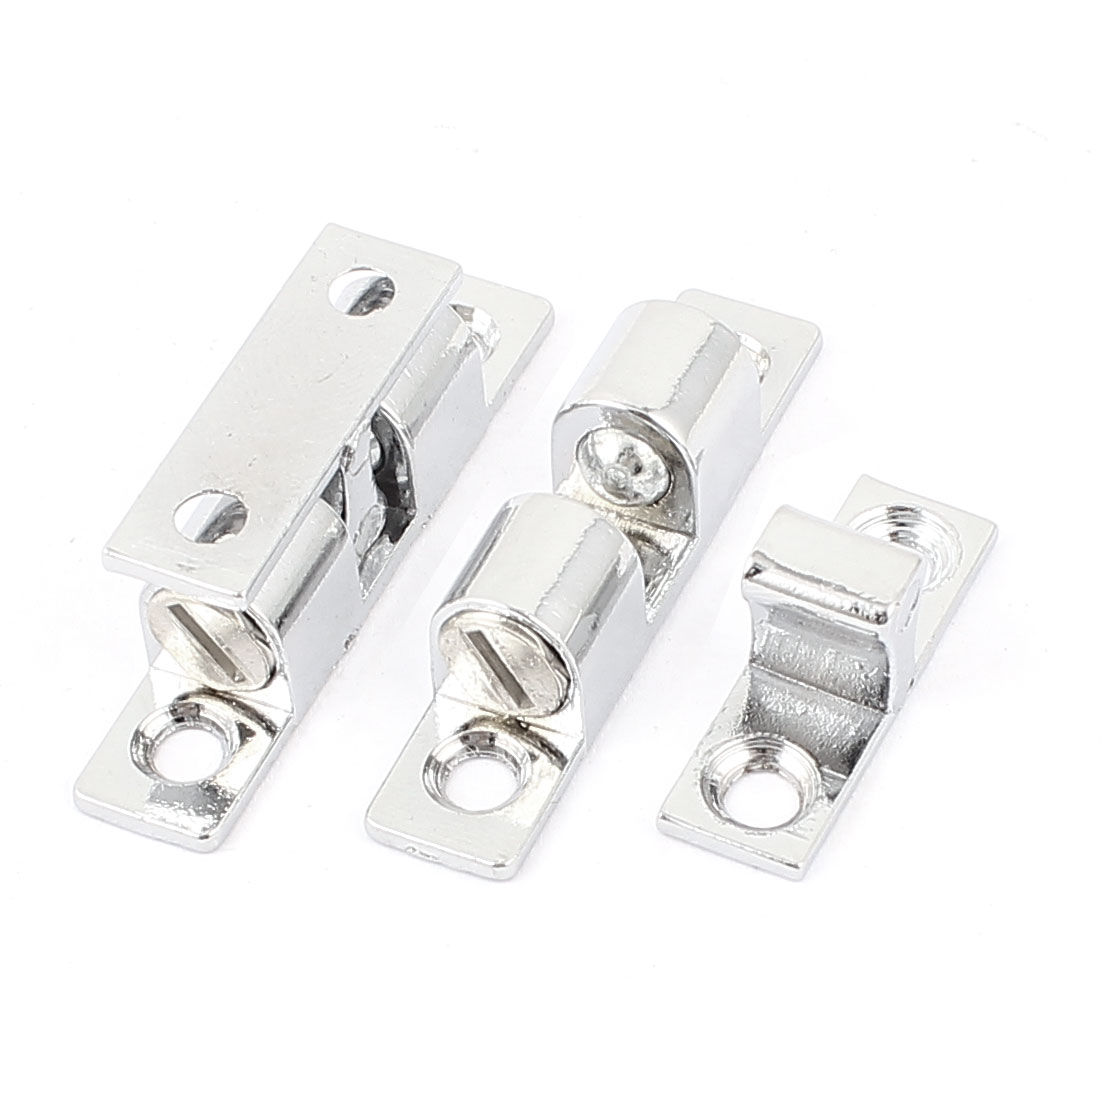 2 Pcs Alloy Cabinet Door Double Ball Catch Hardware 48mm Length